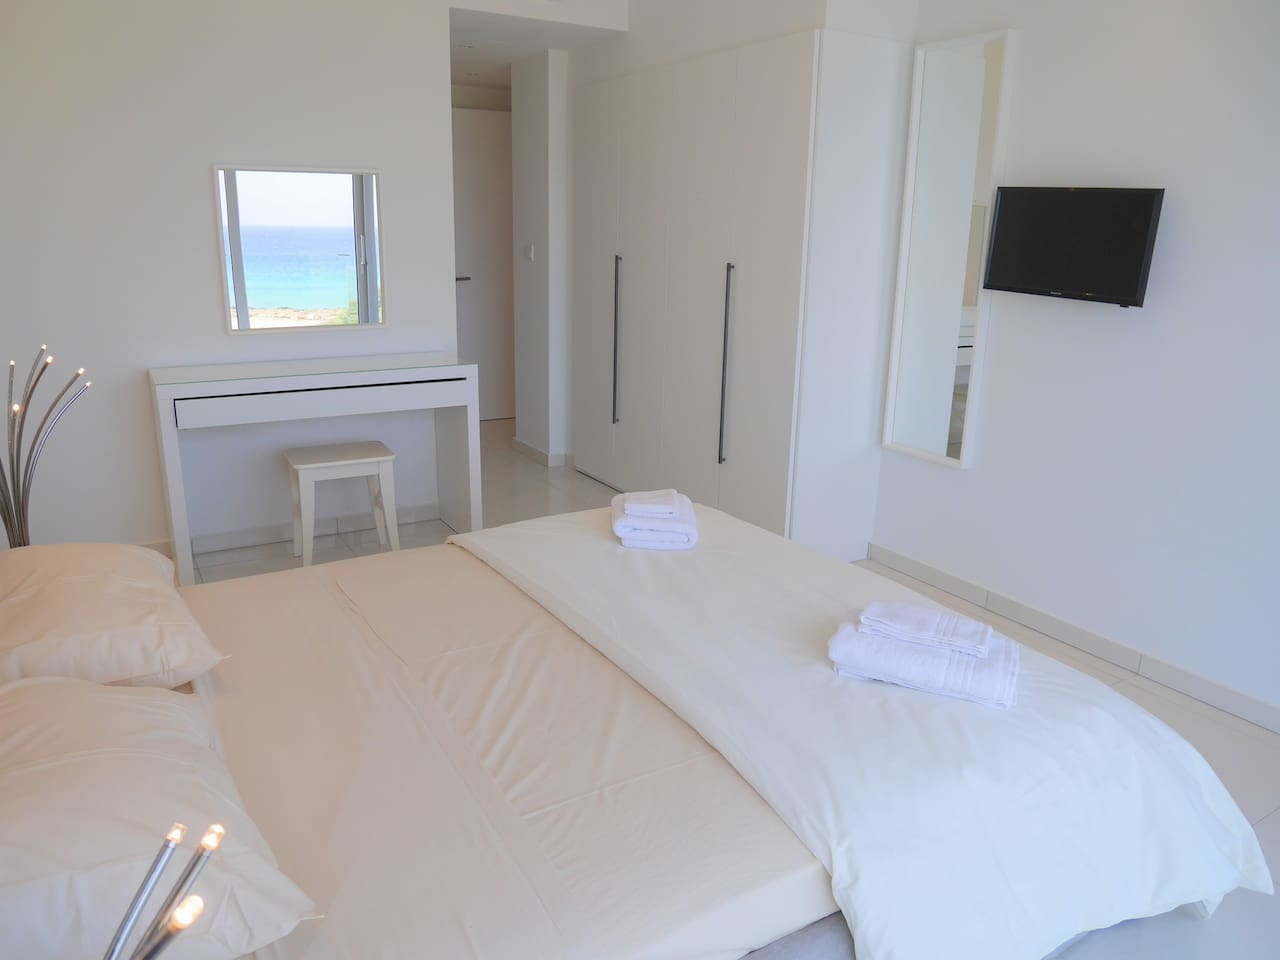 Apartment 2 Bed Luxury Apt with Large Communal Pool B1-001 photo 28339686